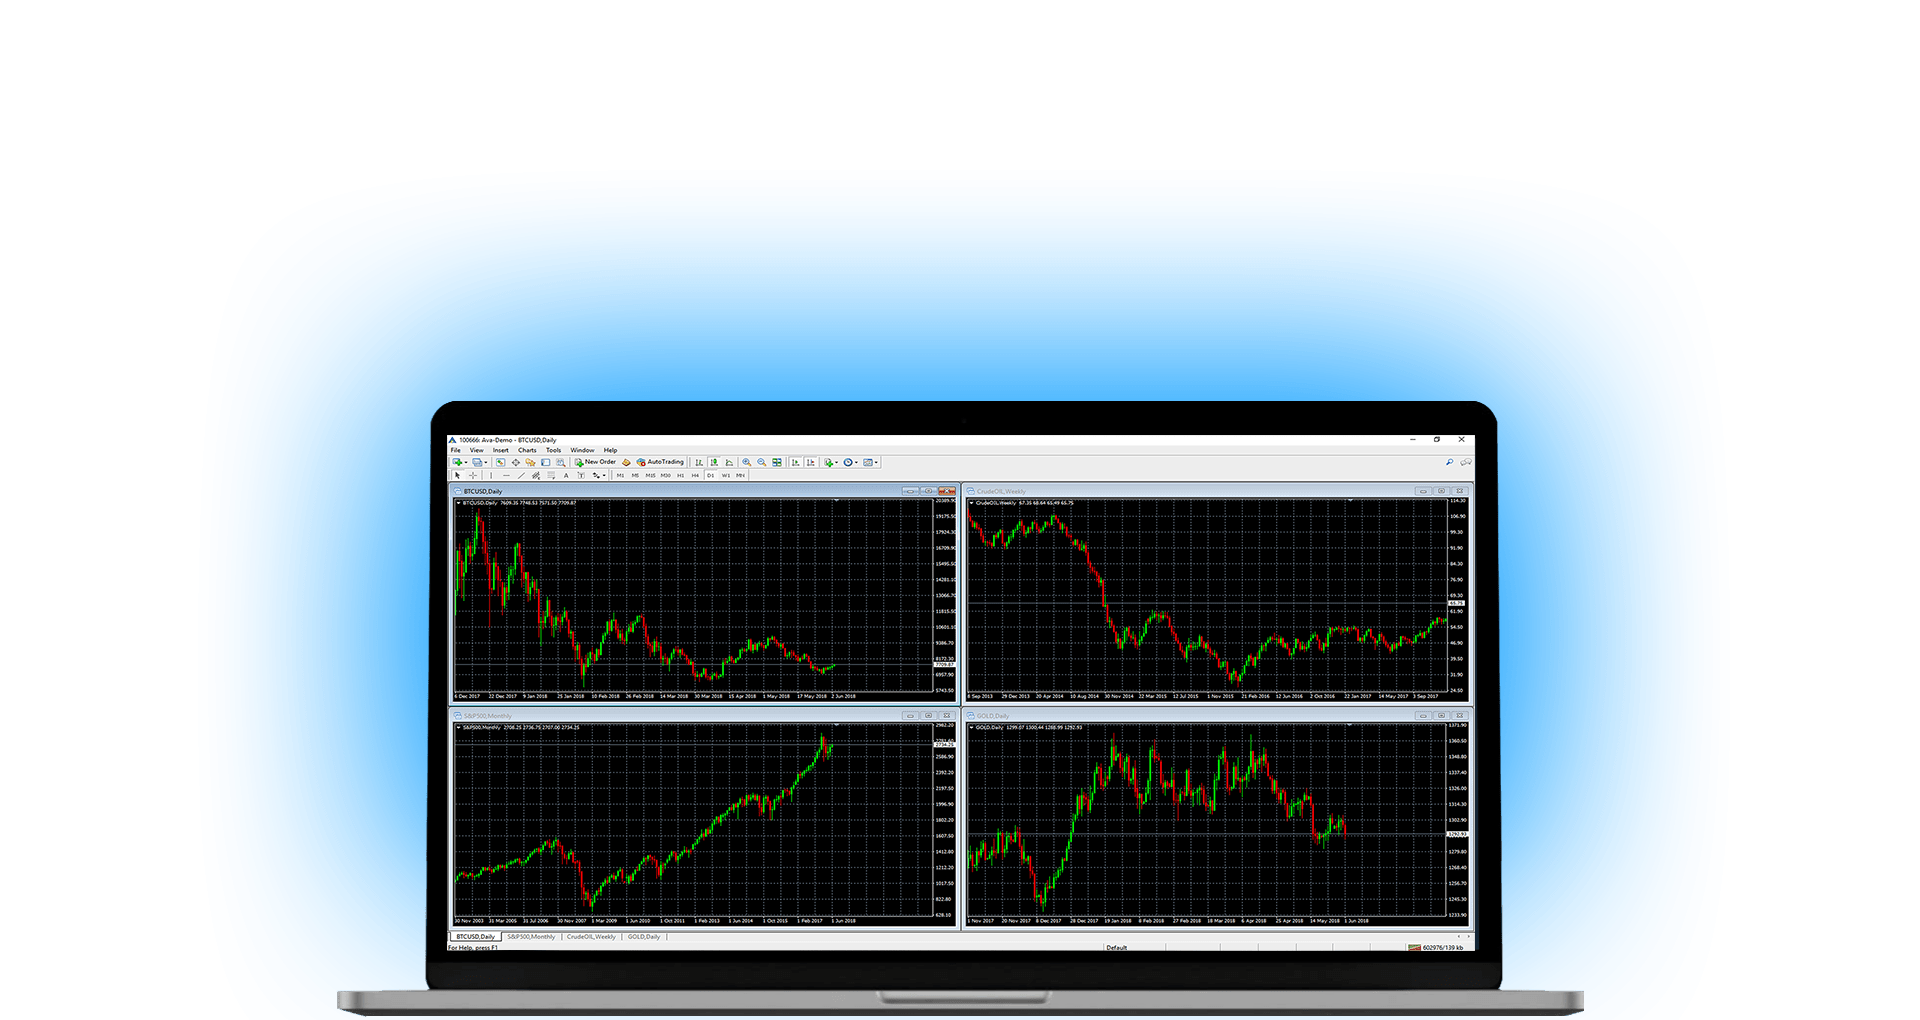 metatrader 4 descarcă Windows 7